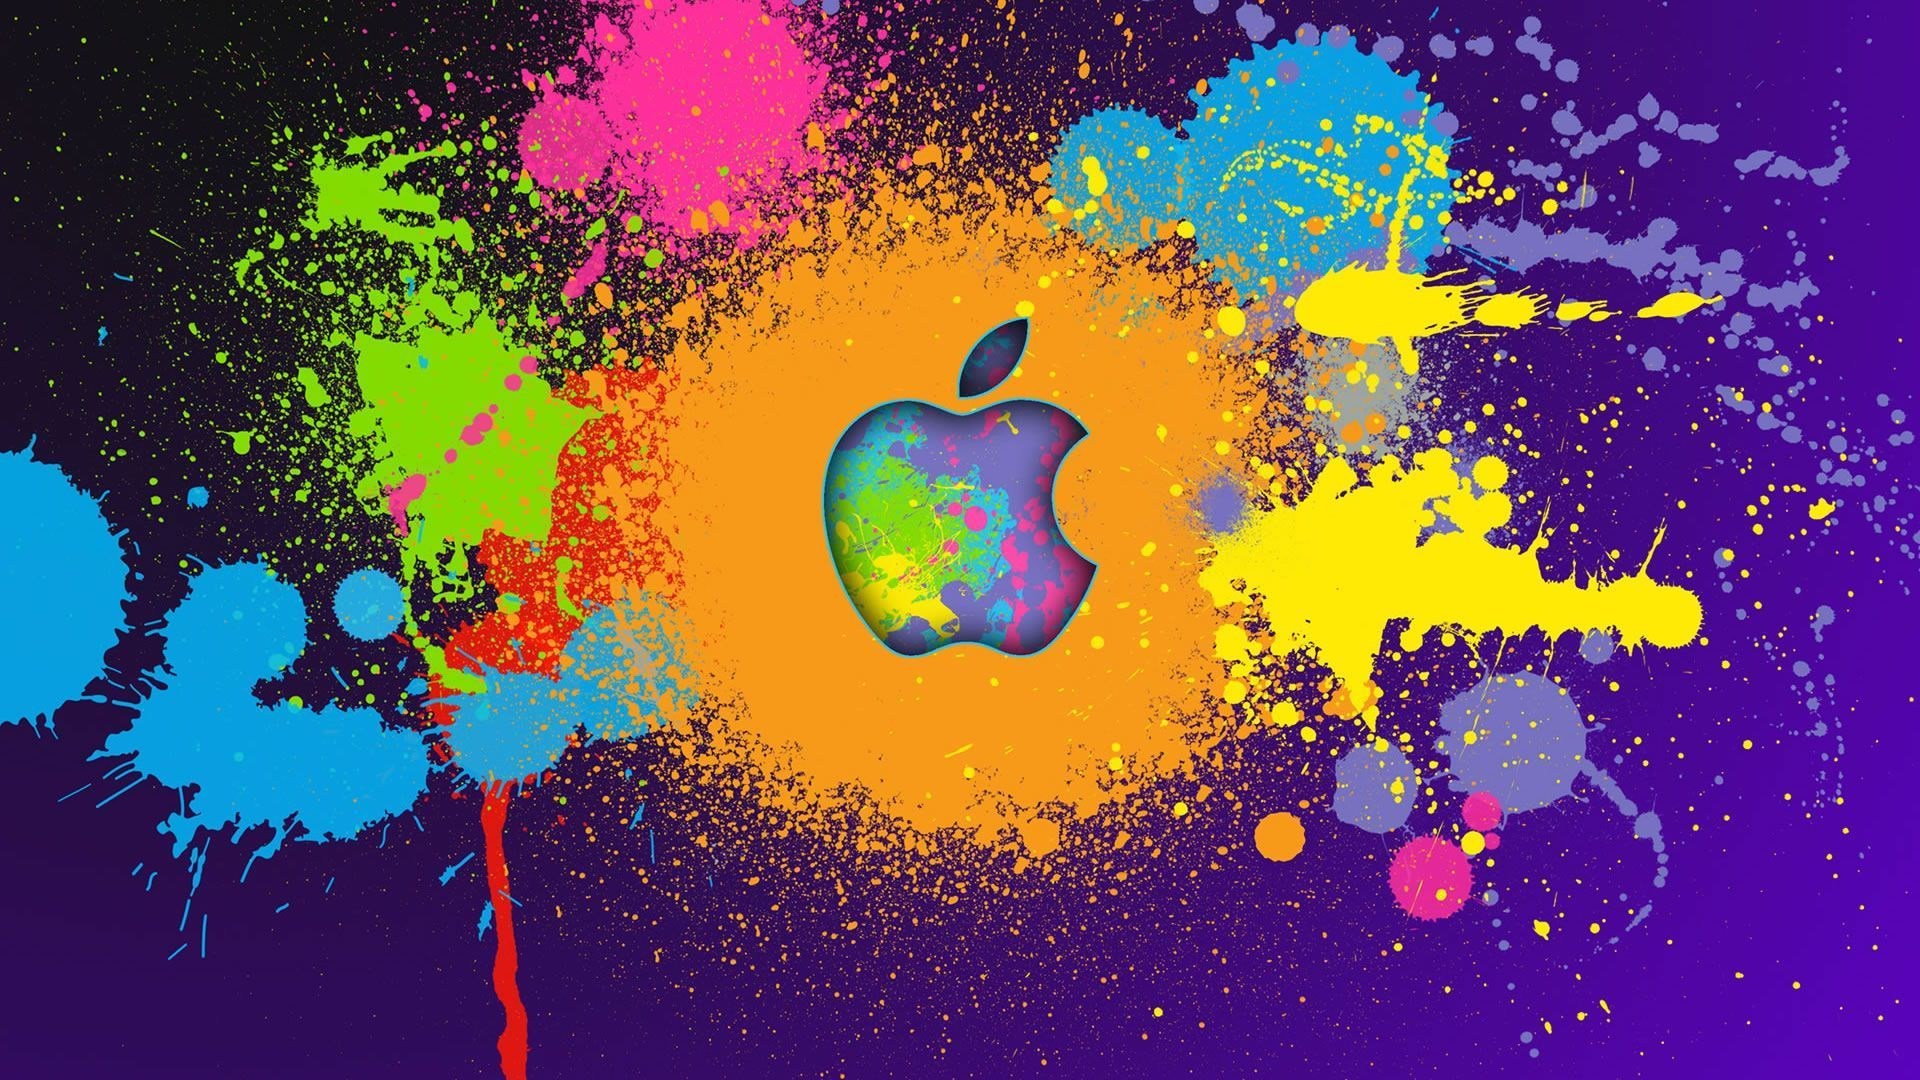 Amazing Wallpaper Mac Colorful - eb4598c7b79e825ba757ec11ef86d118  Pic_49468.jpg